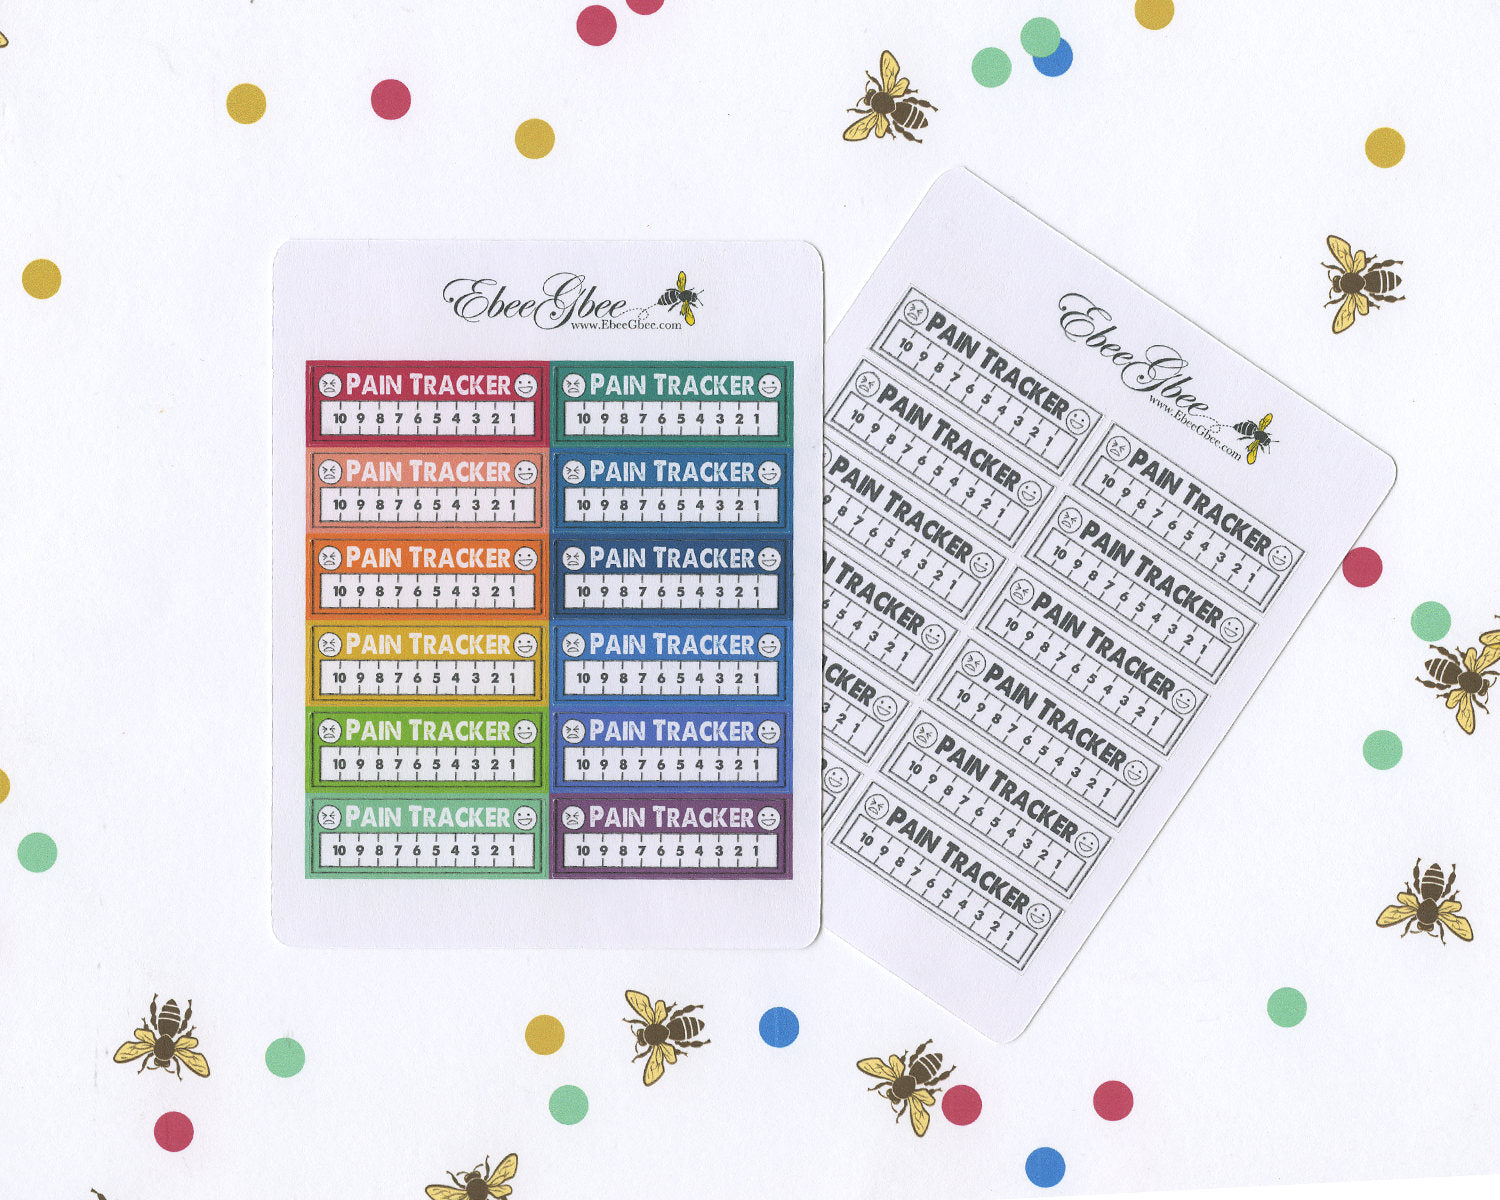 PAIN TRACKER Planner Stickers | Hand Drawn BuJo Style